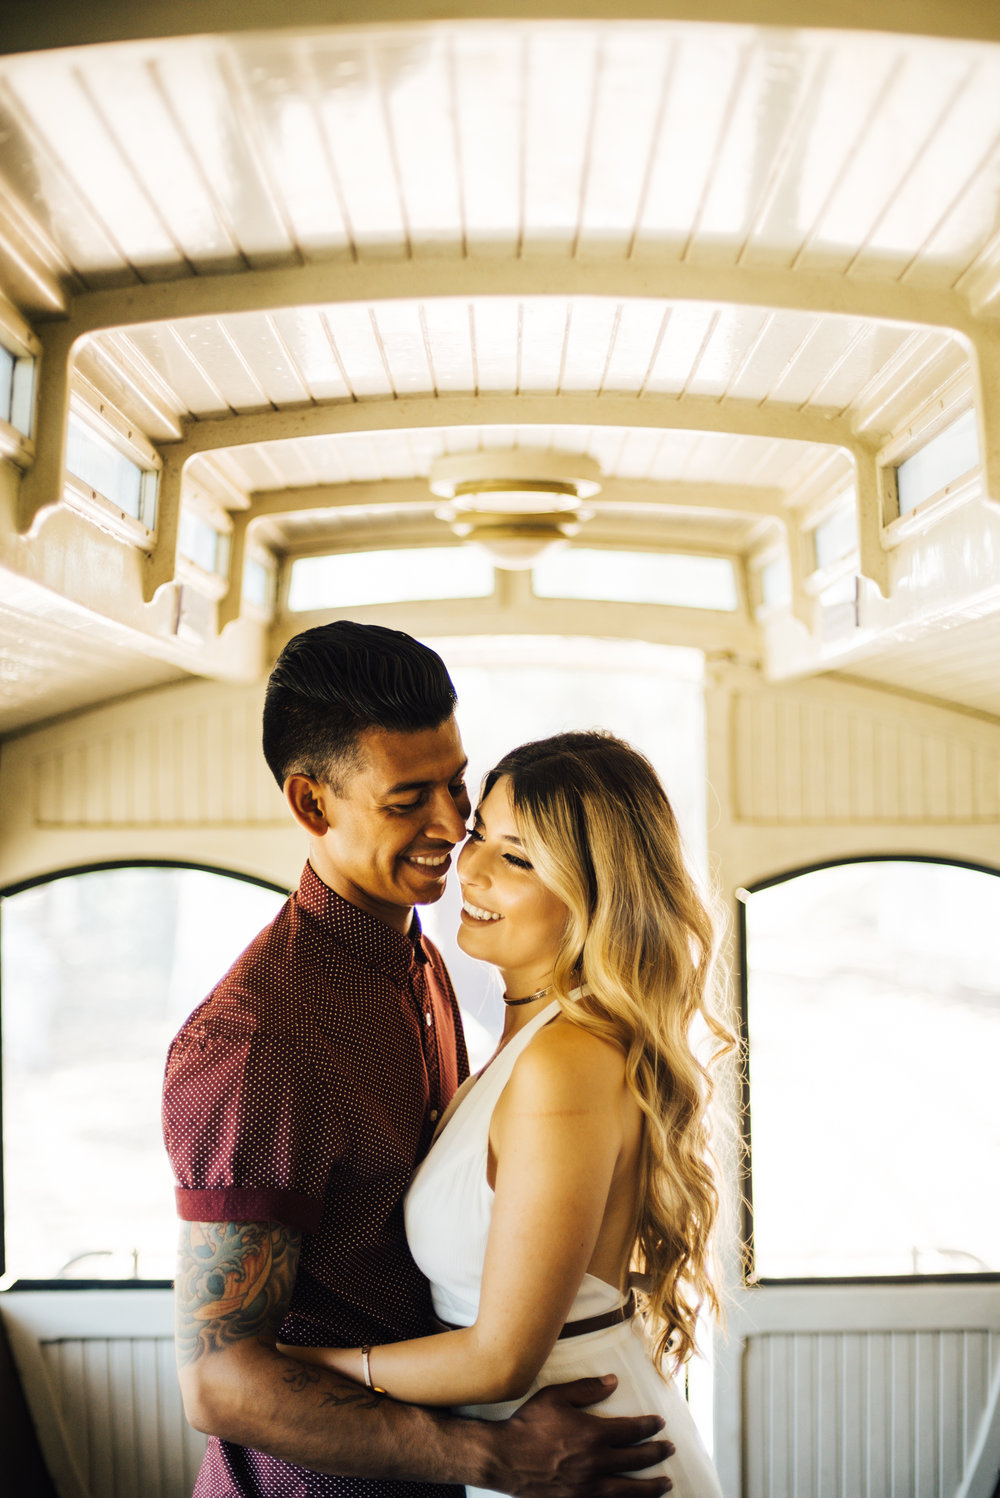 san diego engagement, engagement session, engagement shoot, engagement ring, san diego photographer, lifestyle photographer, boho elopement, boho engagement, bohemian, gypsy shoot, couple shoot, engaged, ashley marie myers, las vegas engagement, las vegas photographer